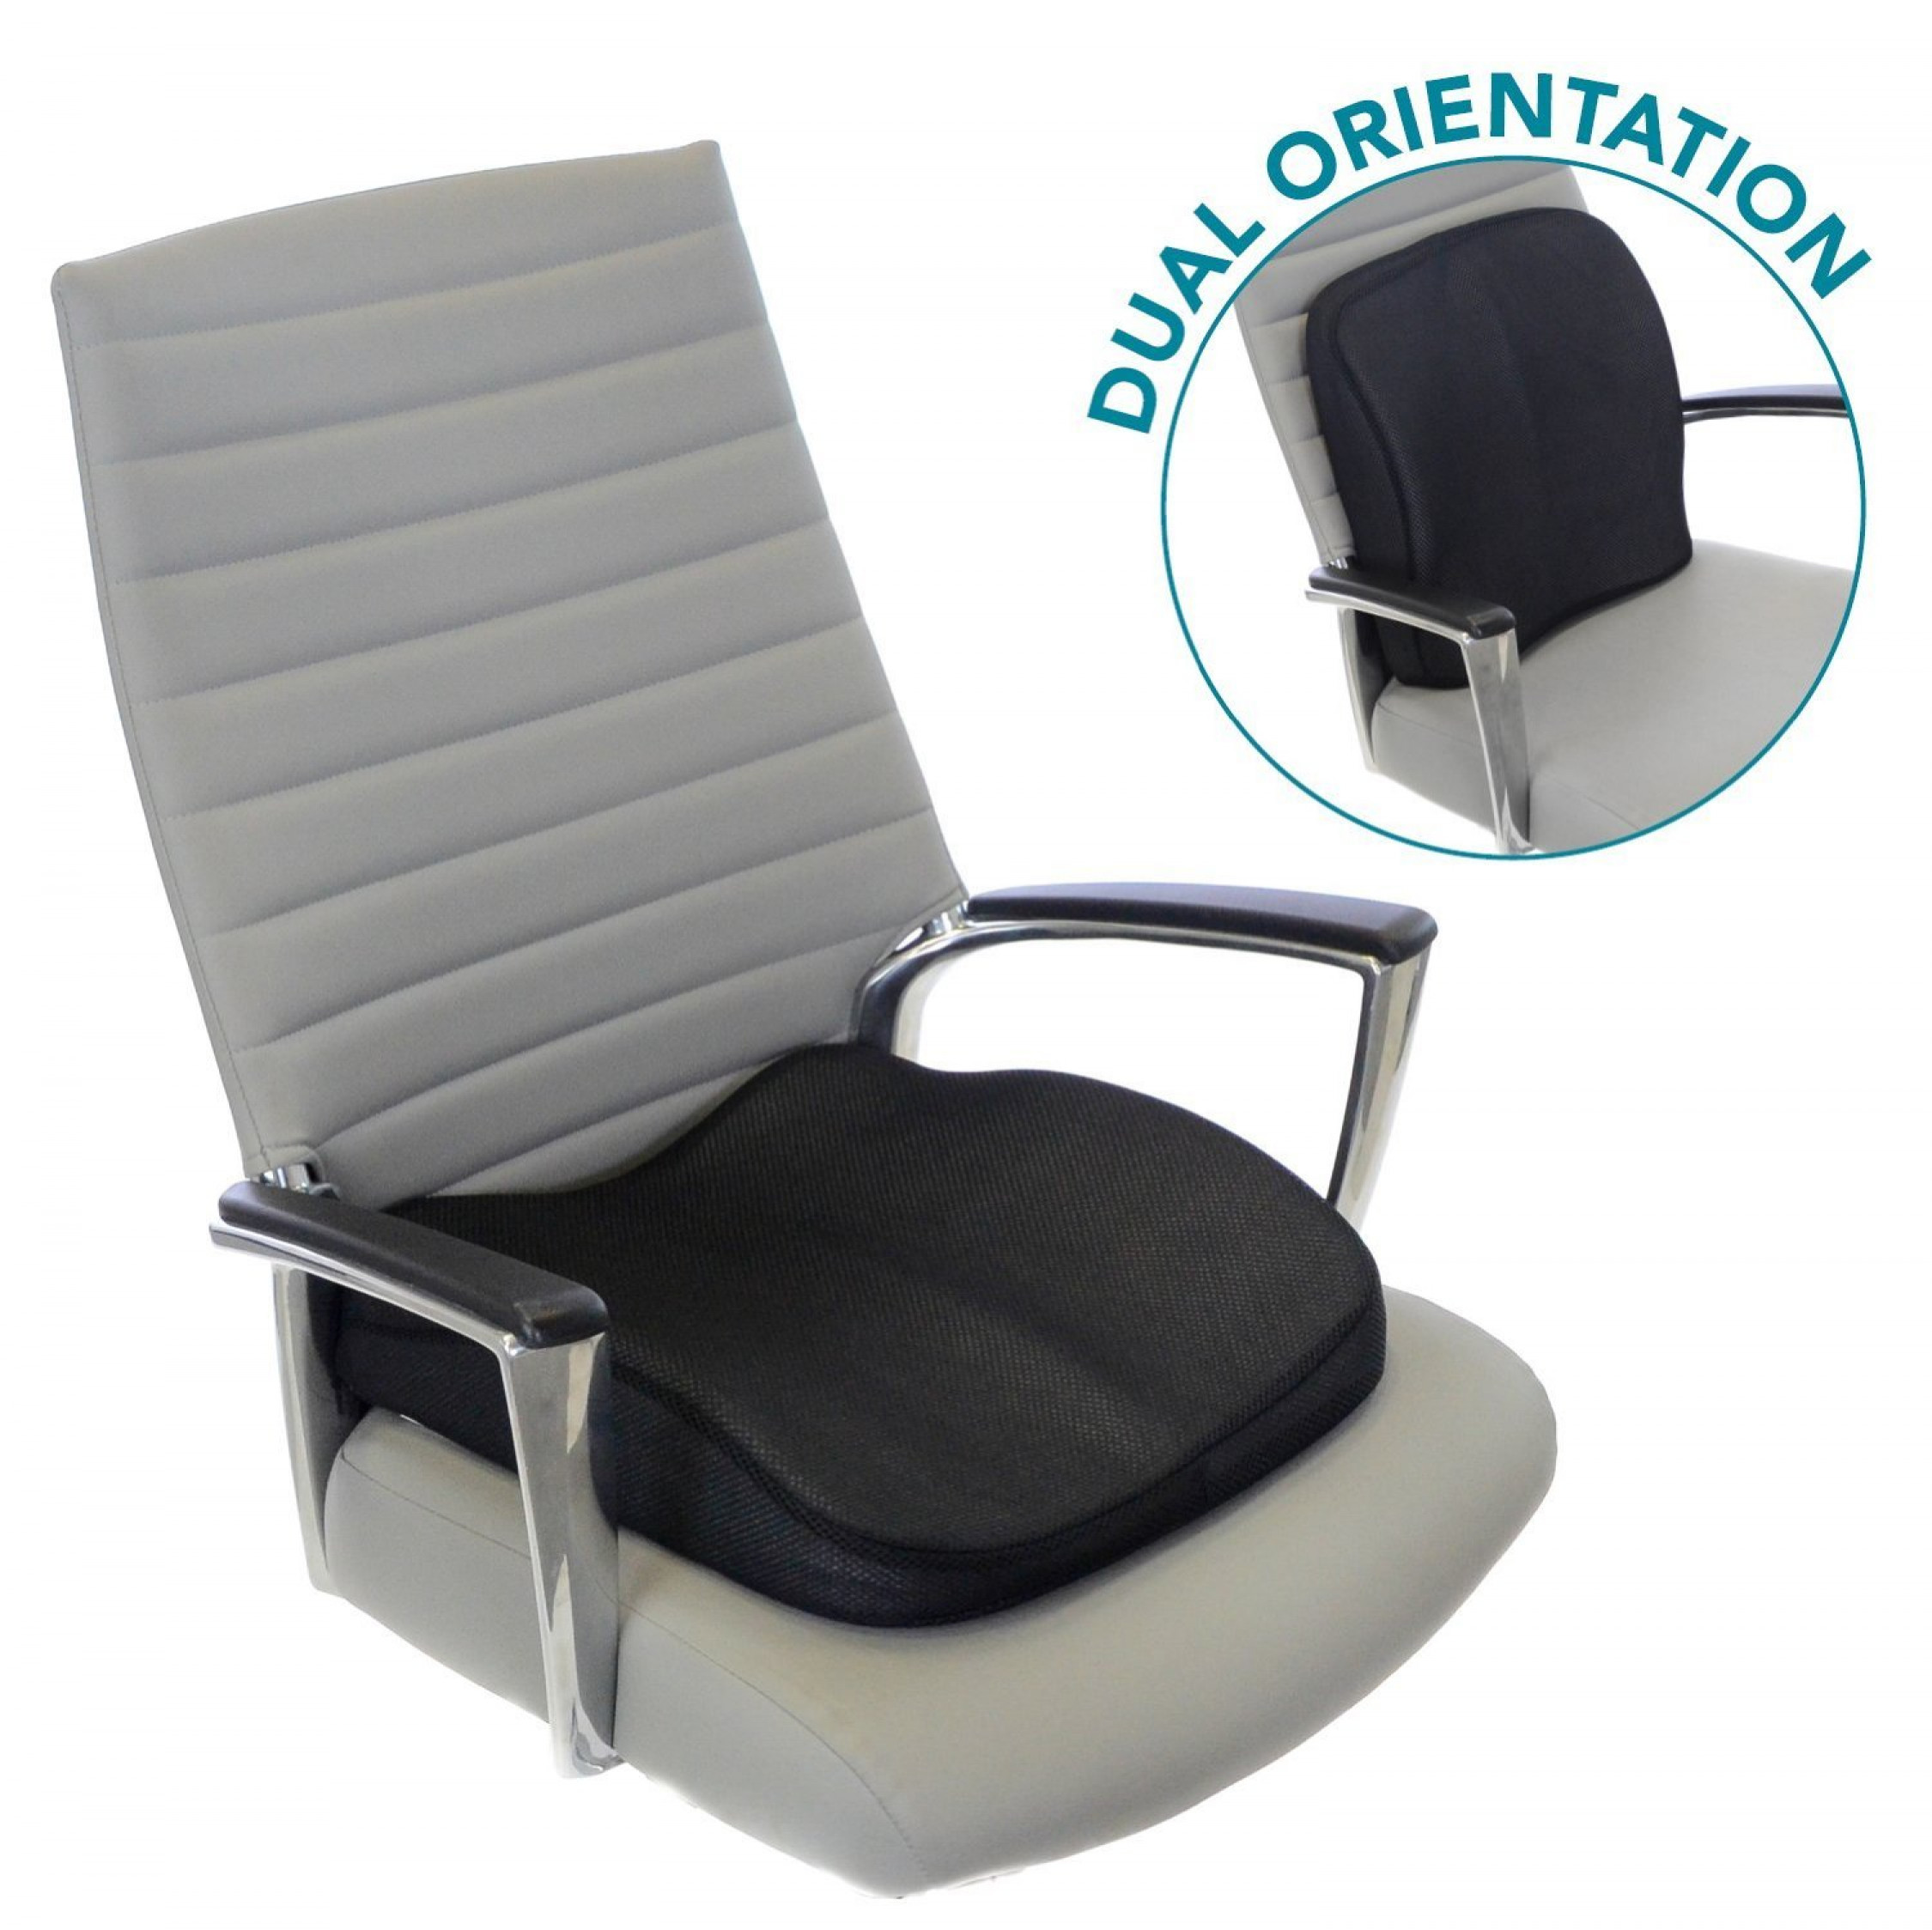 Back Support Chair Memory Foam Seat Cushion For Lower Back Support And Seat